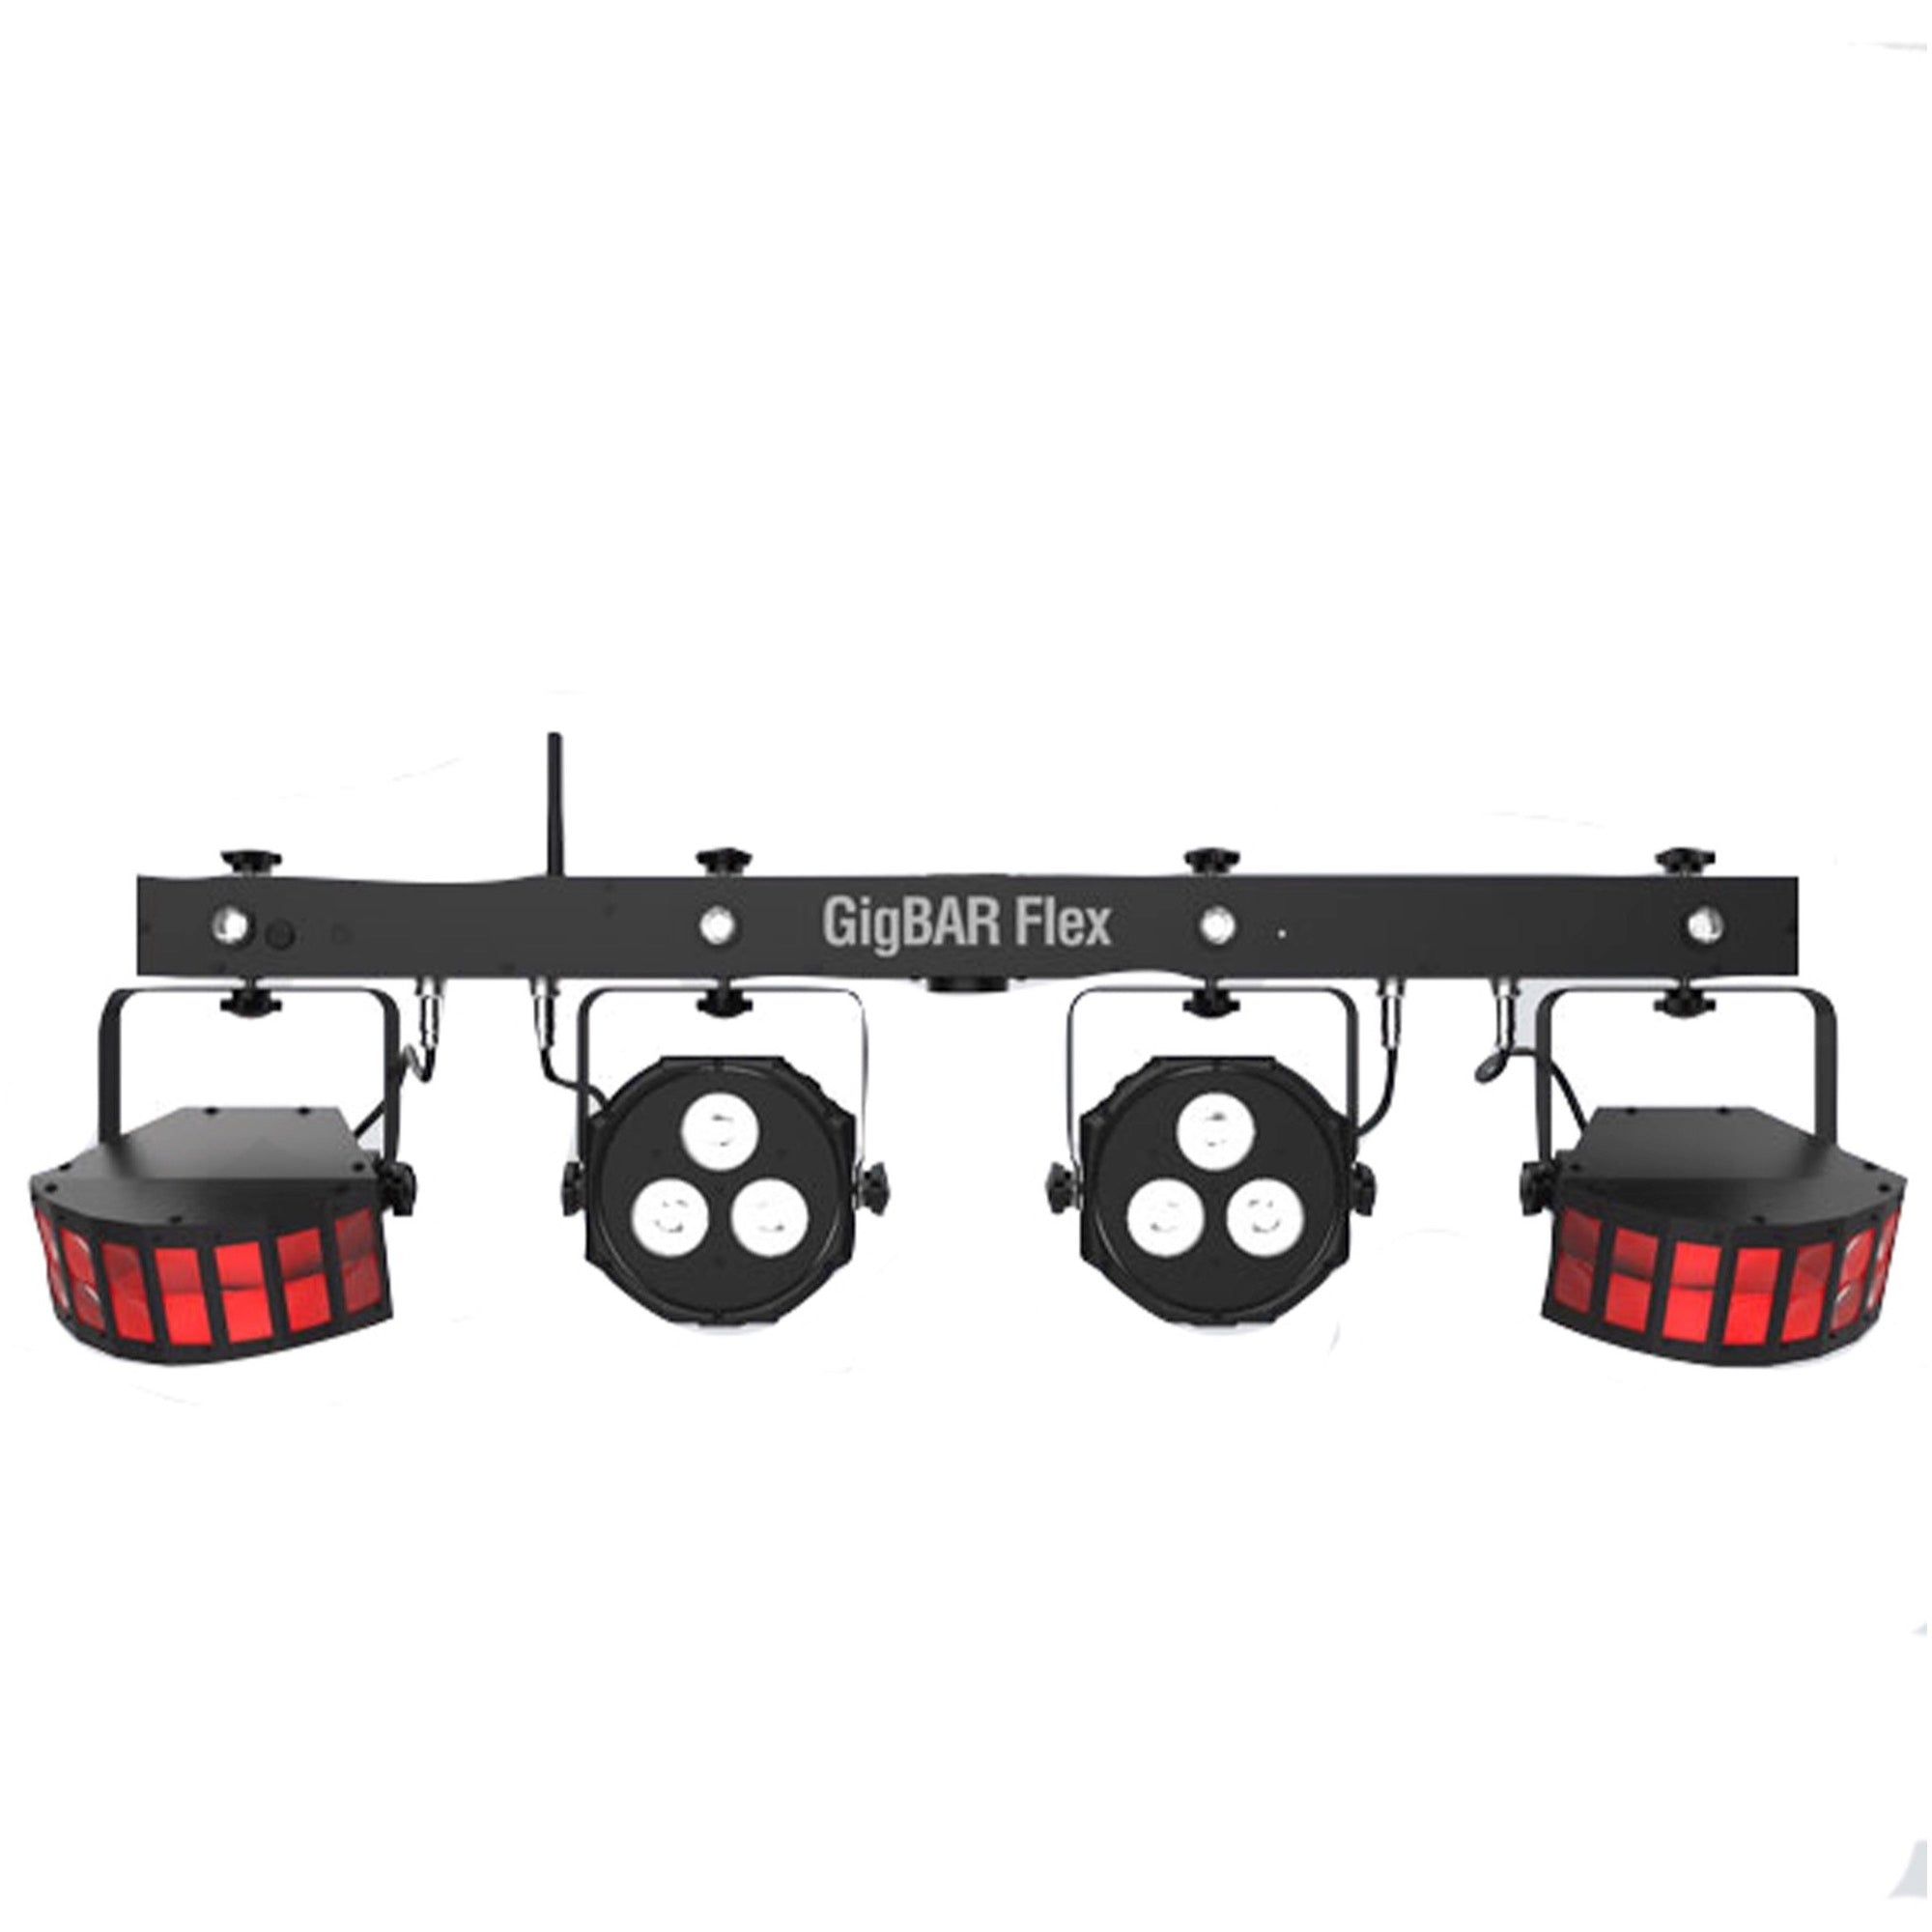 Chauvet DJ GigBar Flex Stage Lighting System